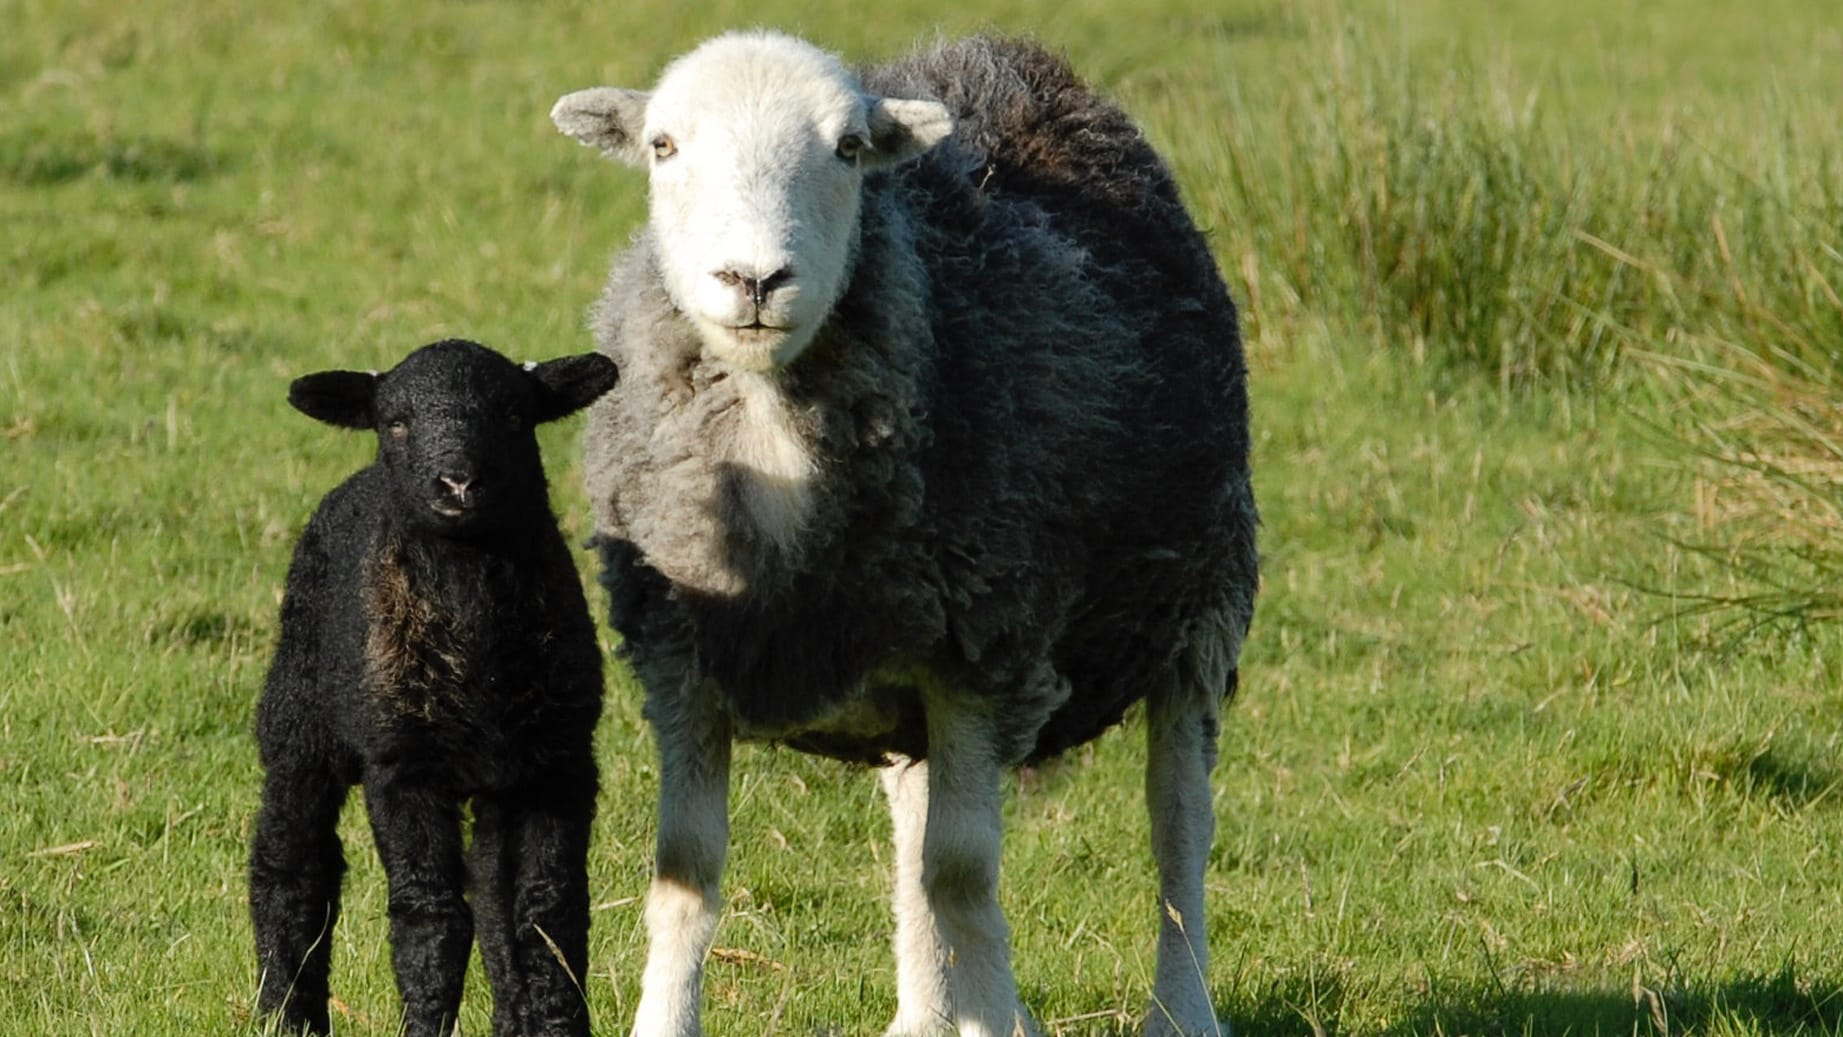 A Herdwick sheep ewe looking at the camera with its black lamb by its side